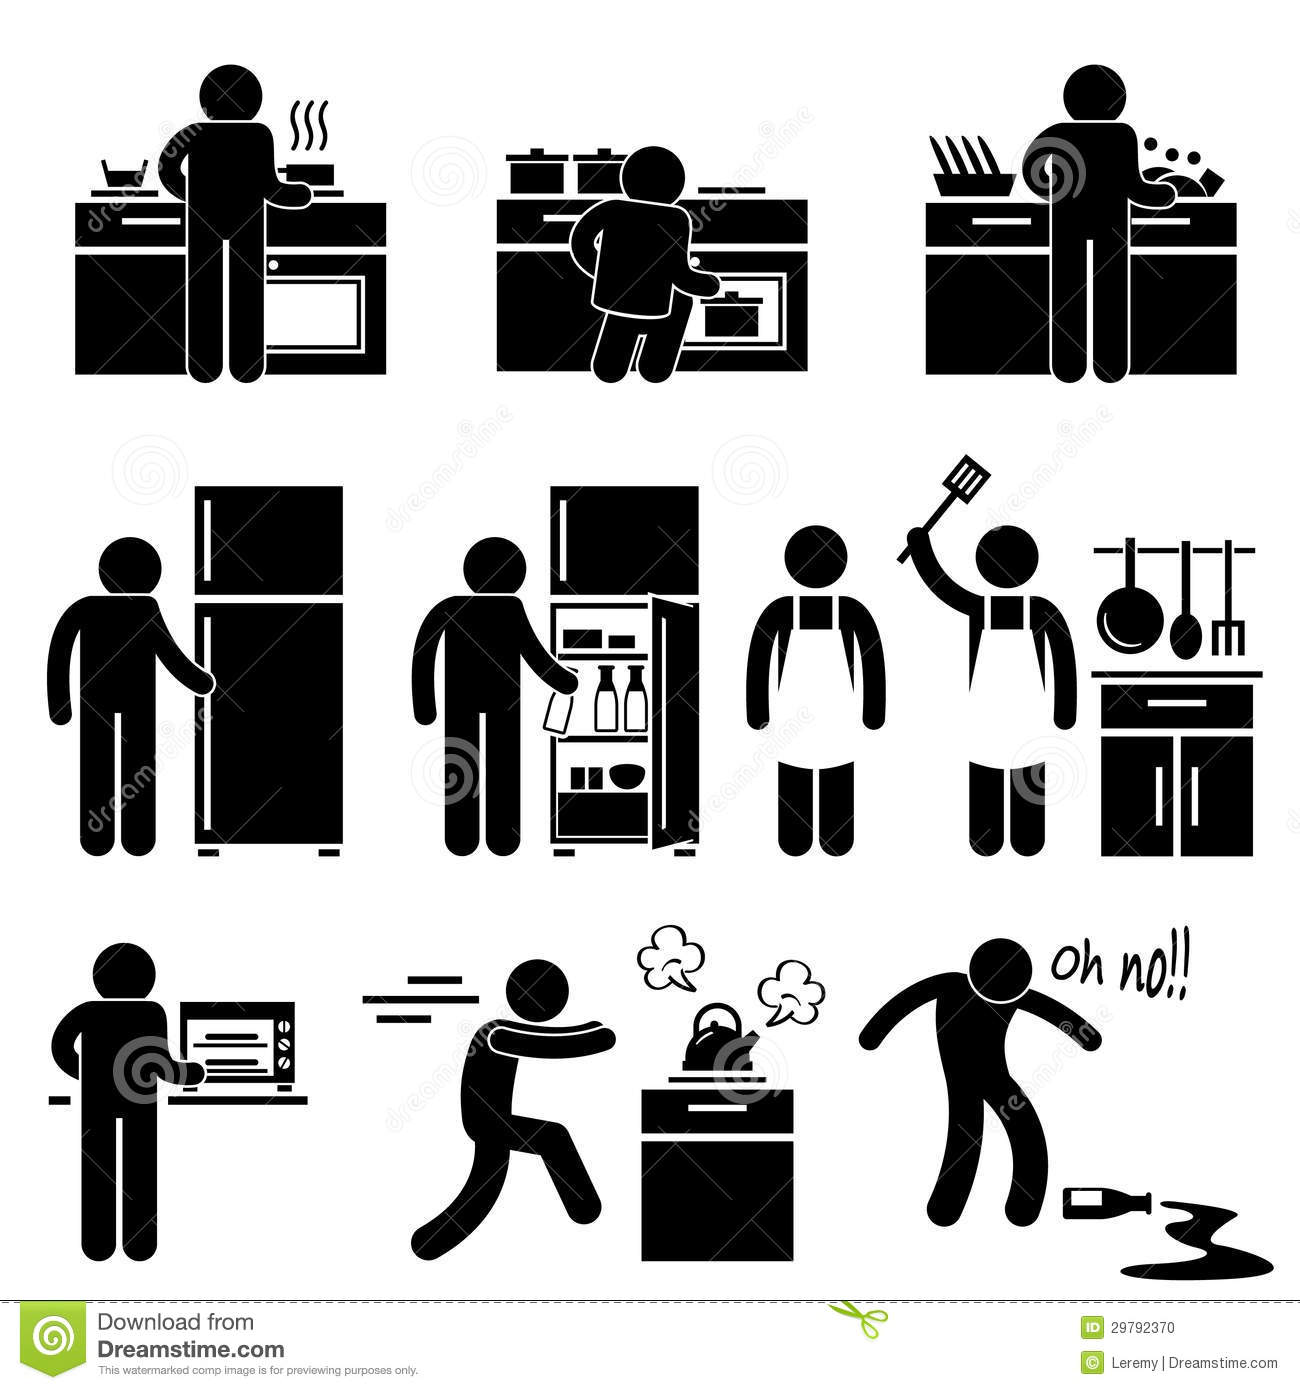 Stock Photo Set Pictograms Representing Man Cooking Using Kitchen Equipment Image29792370 on Home Plans With Open Kitchen